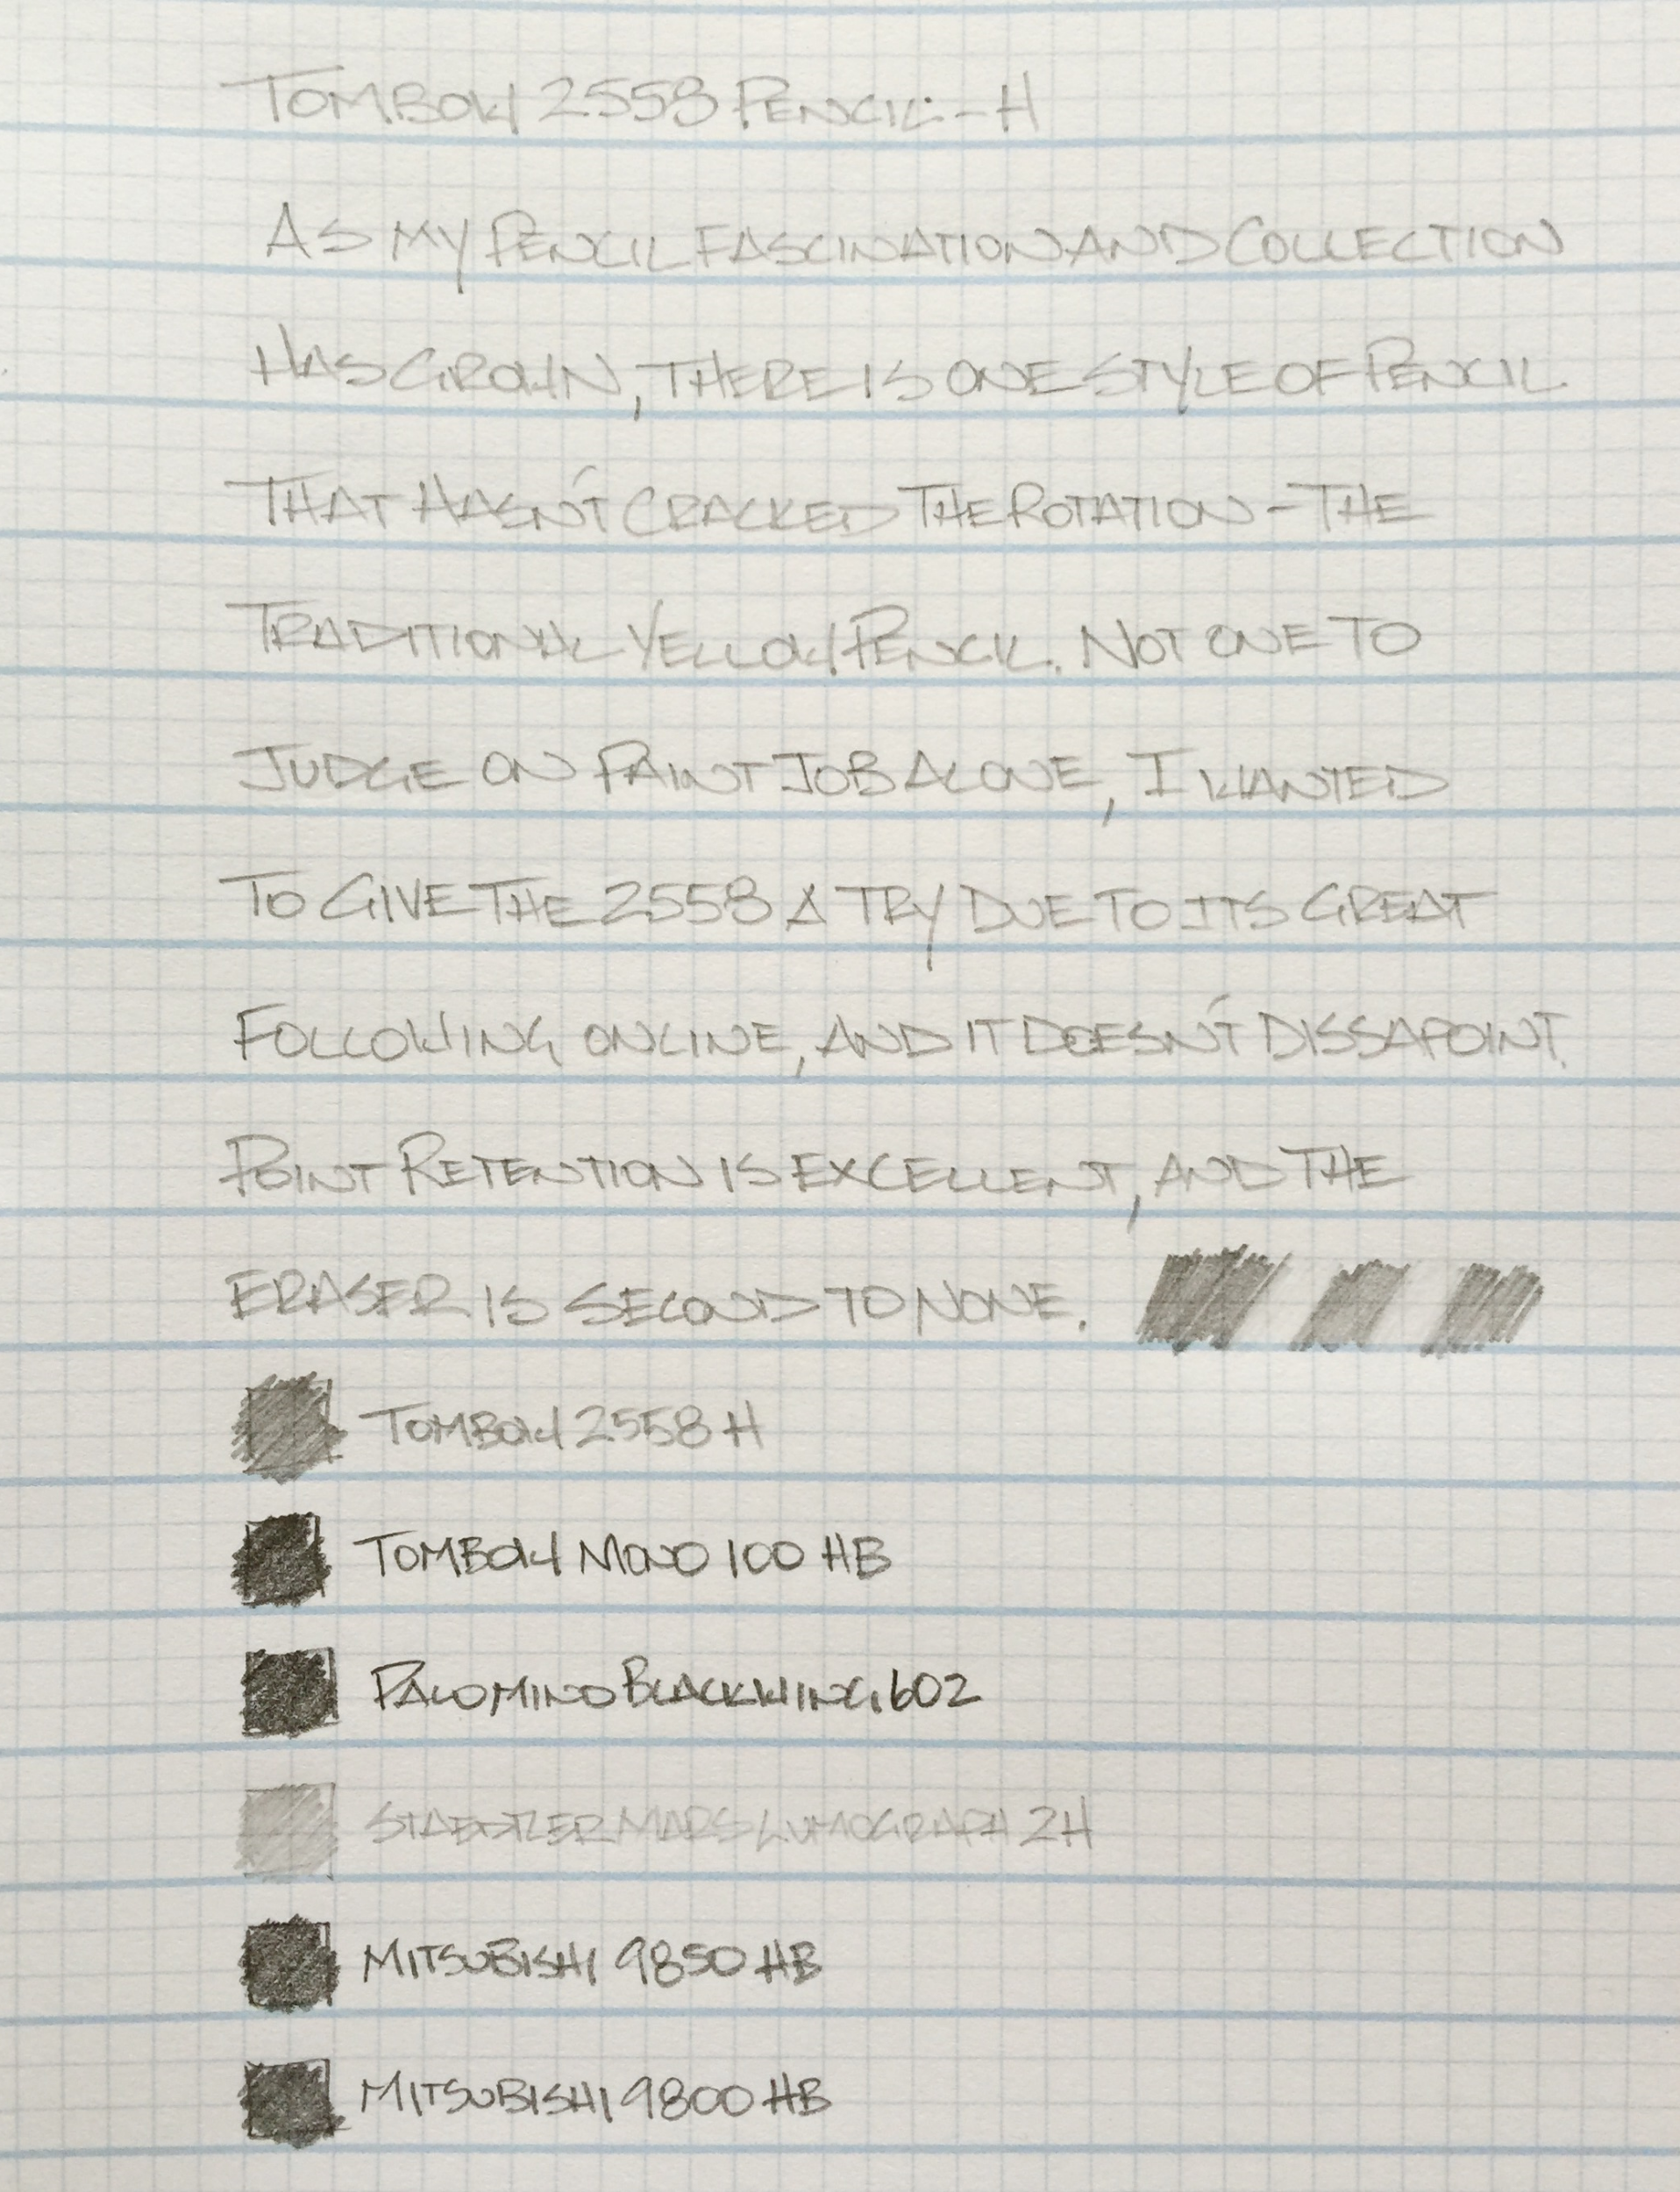 Tombow 2558 Review.jpg